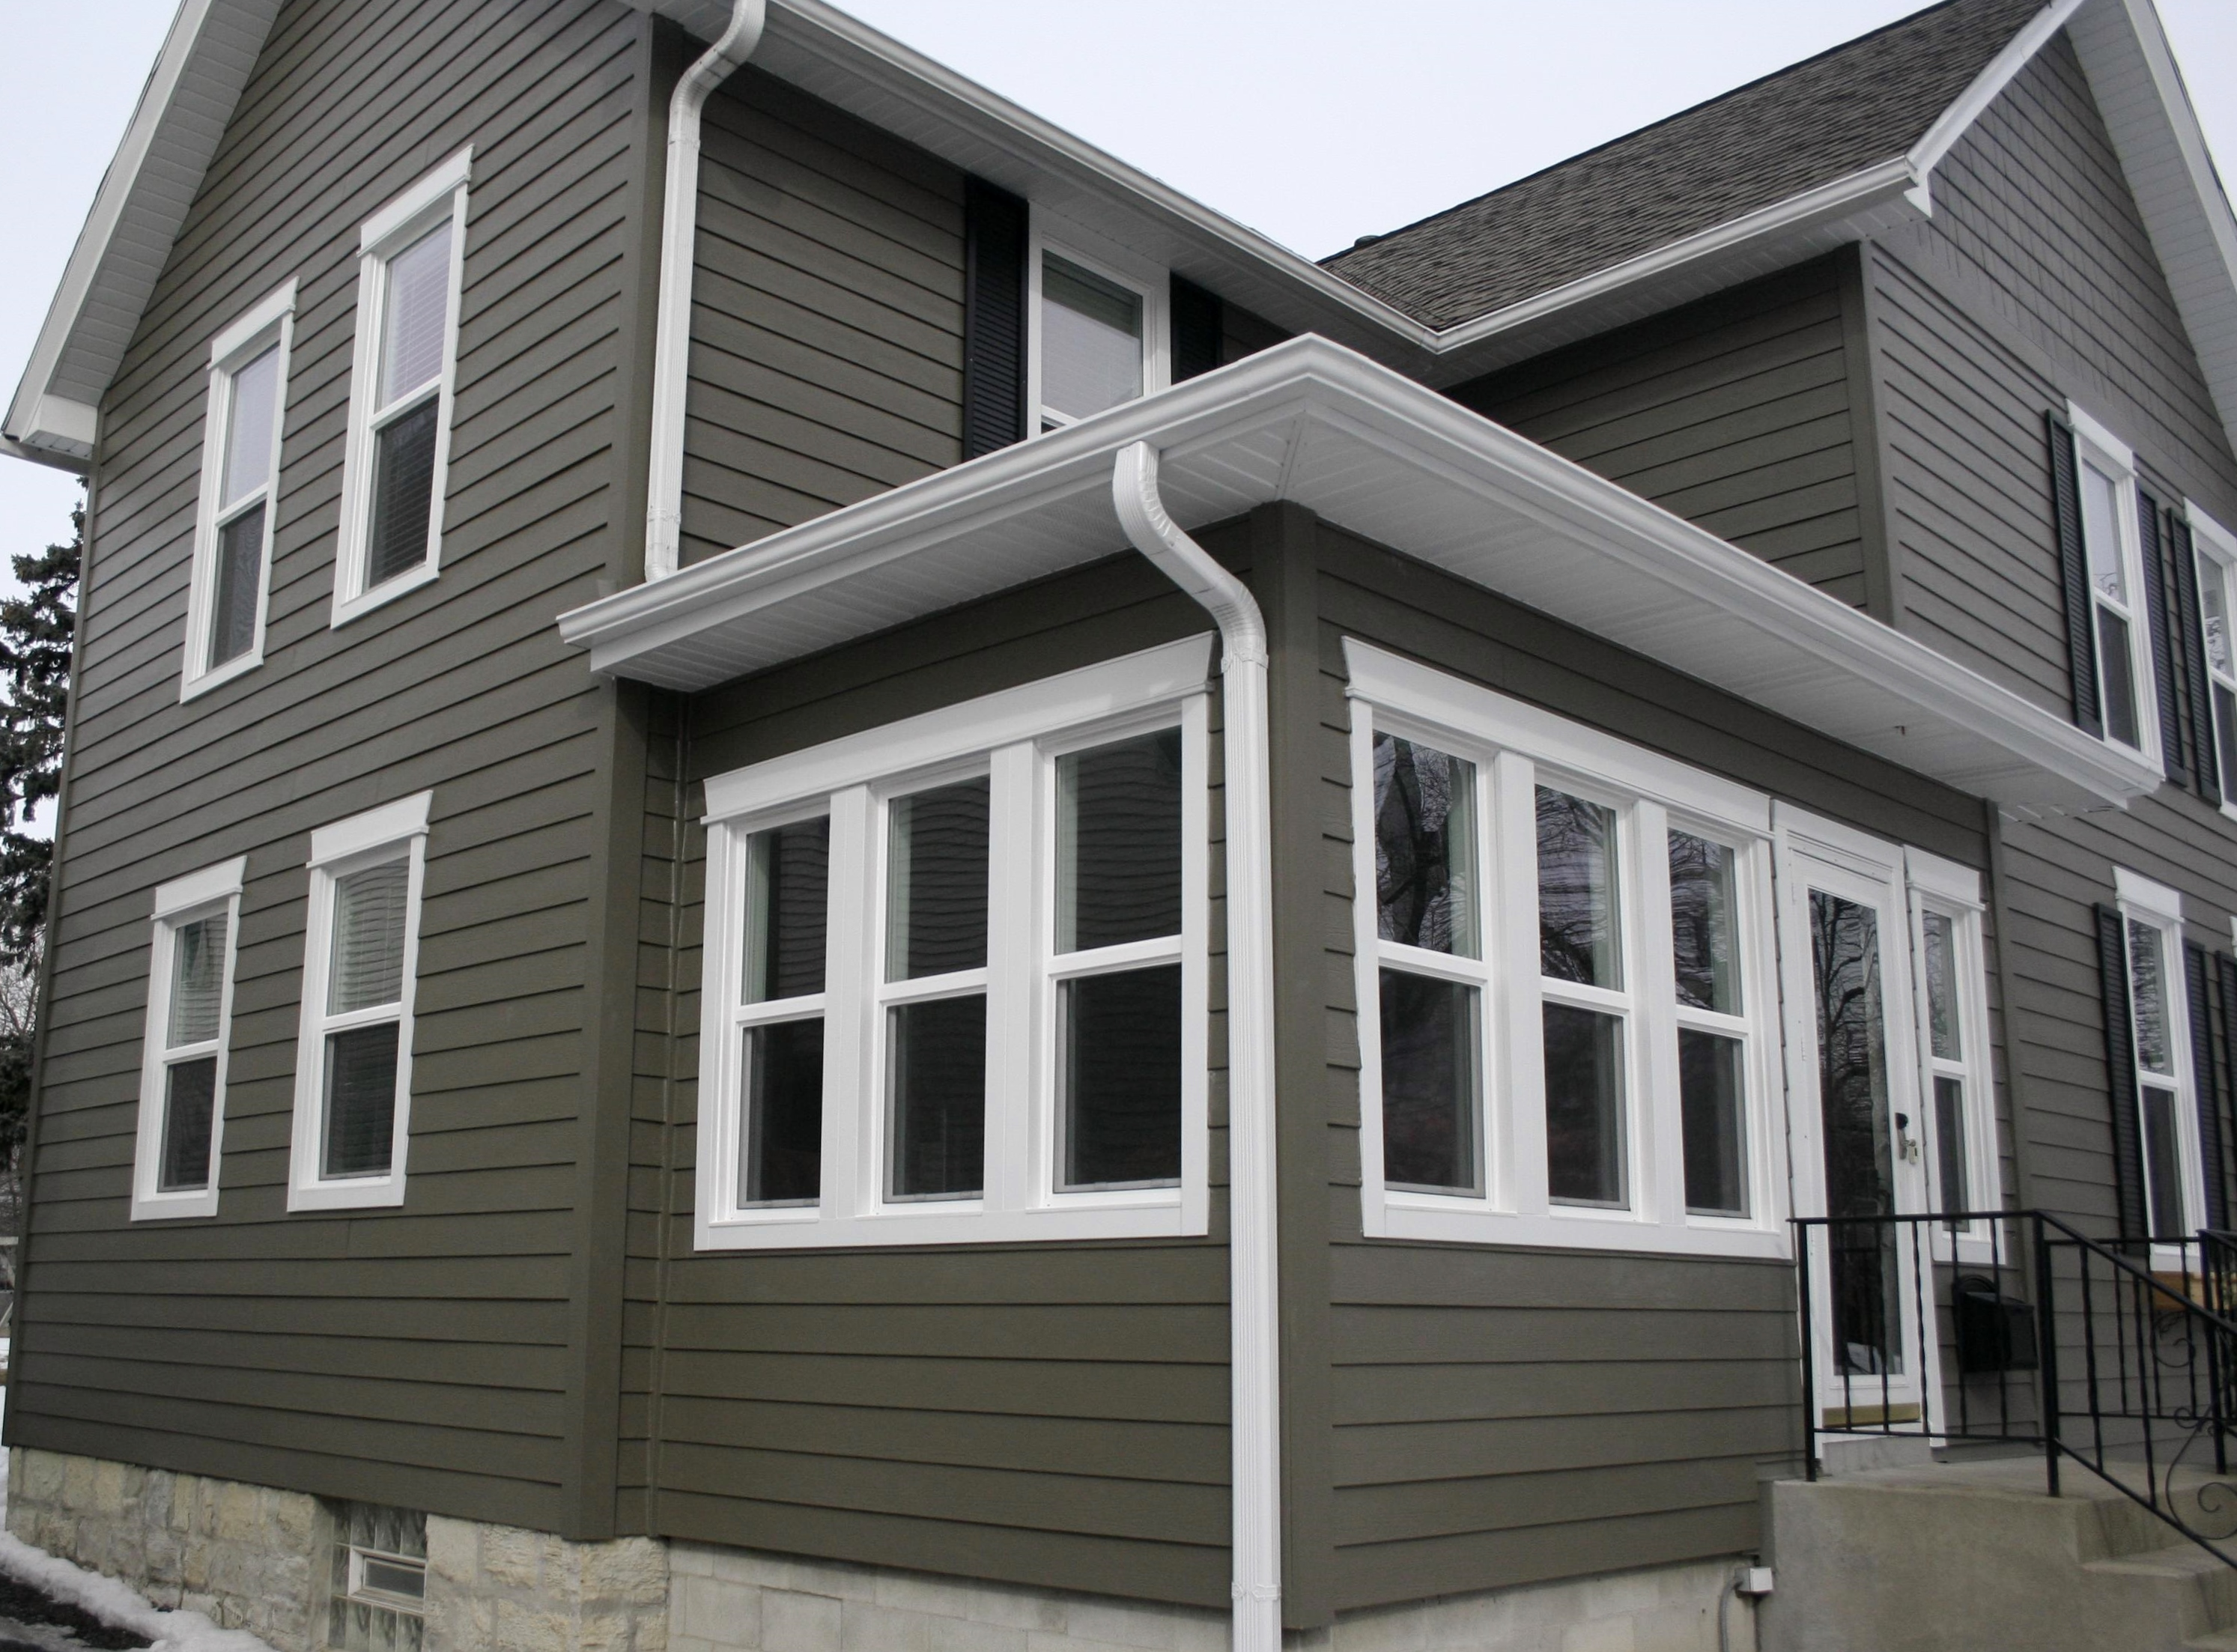 What Are The Pros And Cons Of Fiber Cement Siding